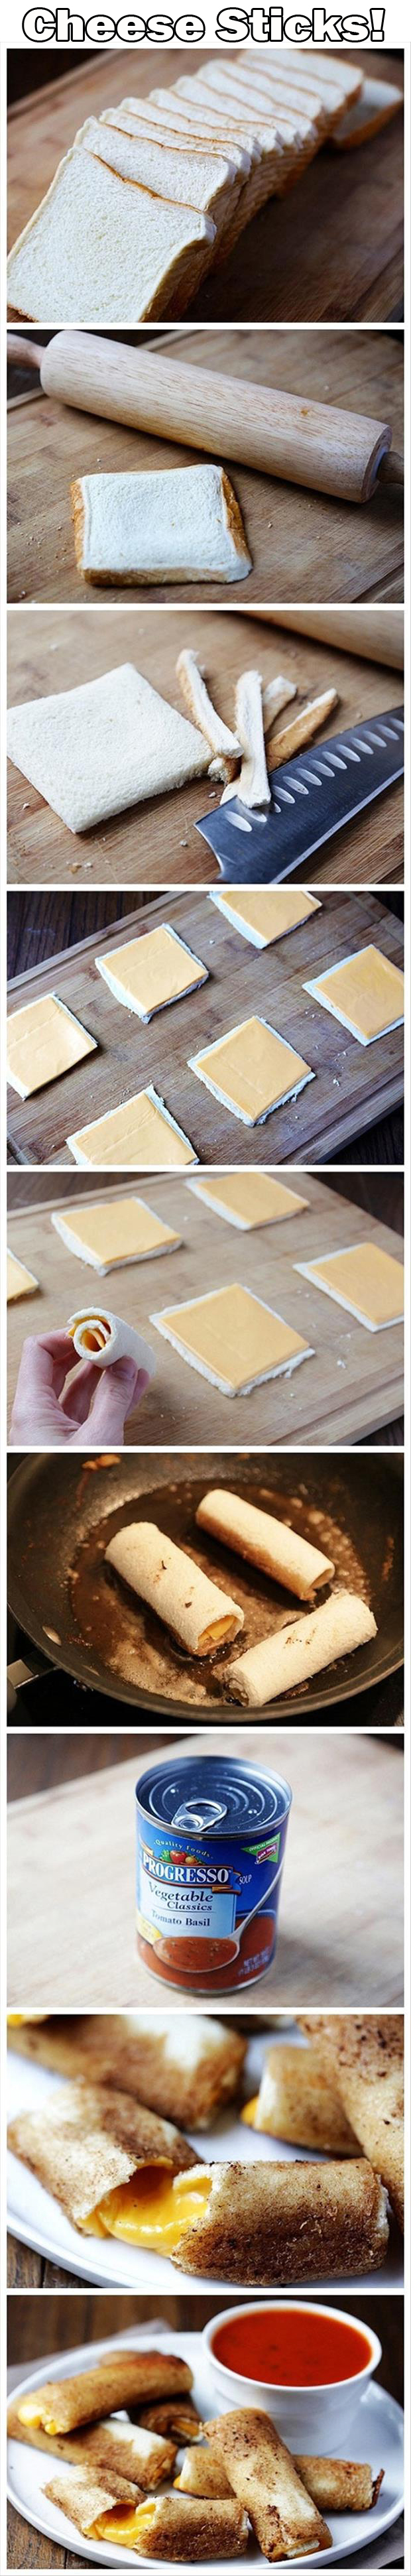 how to make cheese sticks